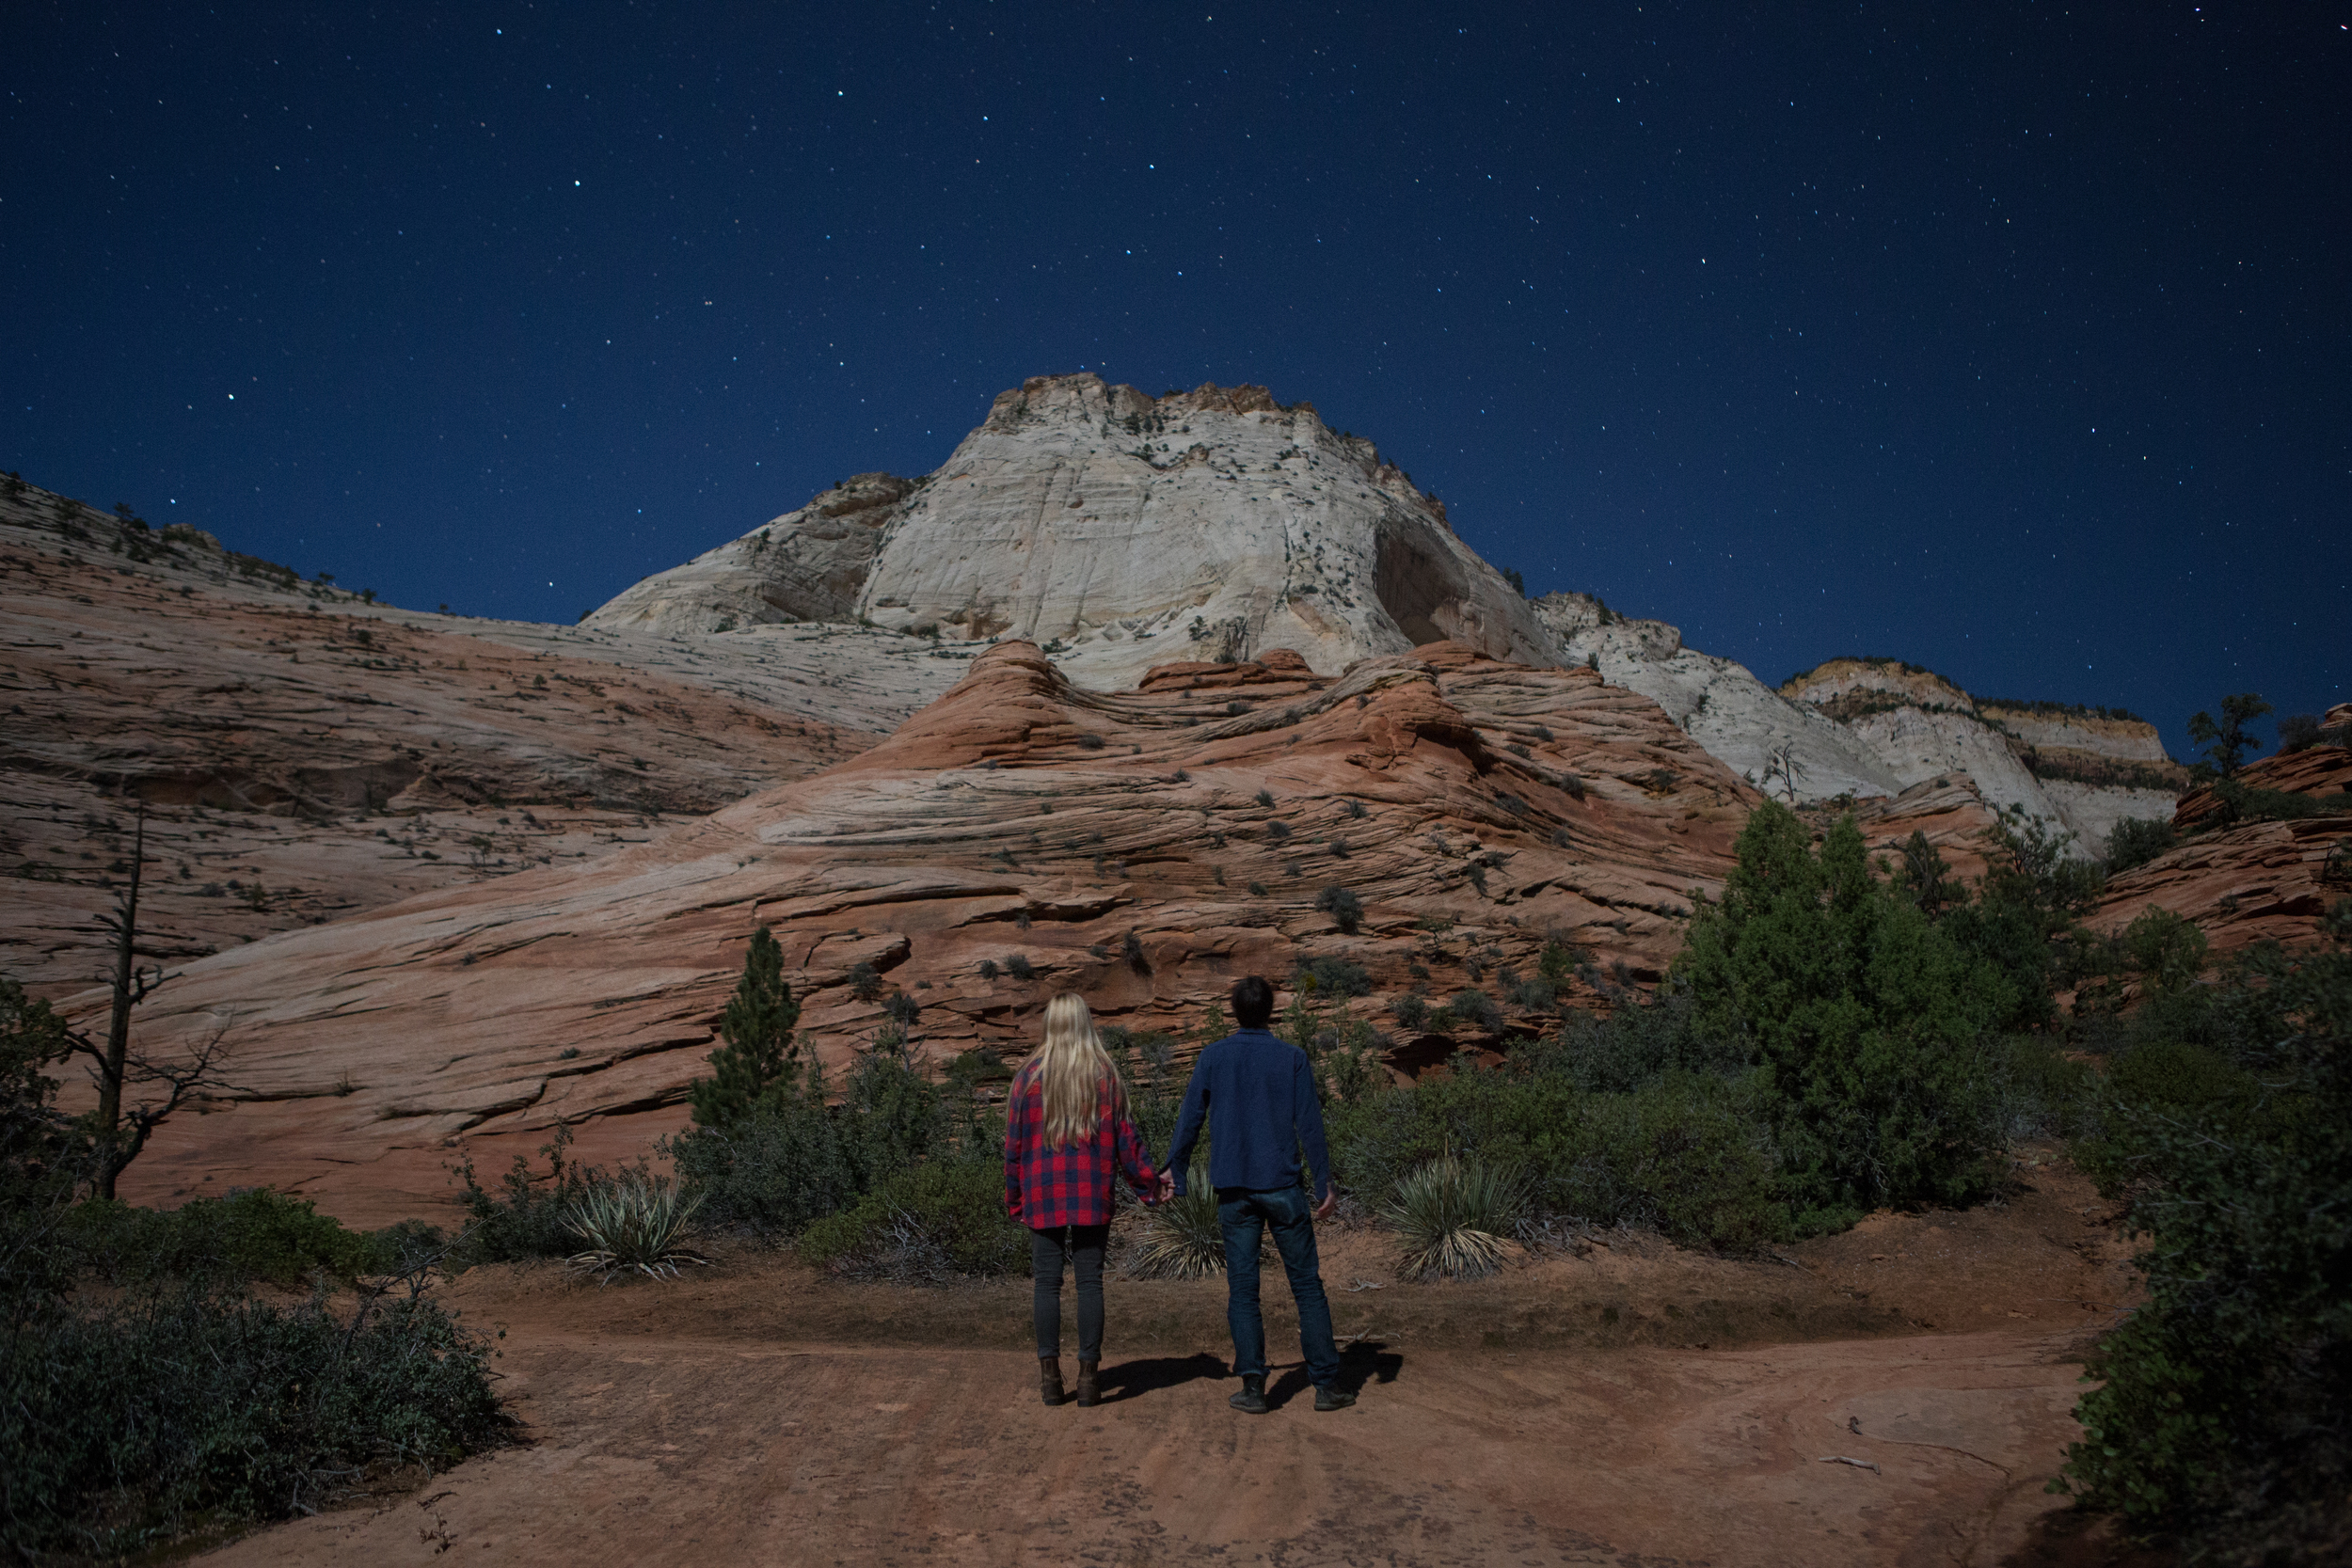 AstroBandit_JordanRose_DariusTwin_DarrenPearson_Zion_Views_Couple_Love_Stars_LongExposure.jpg